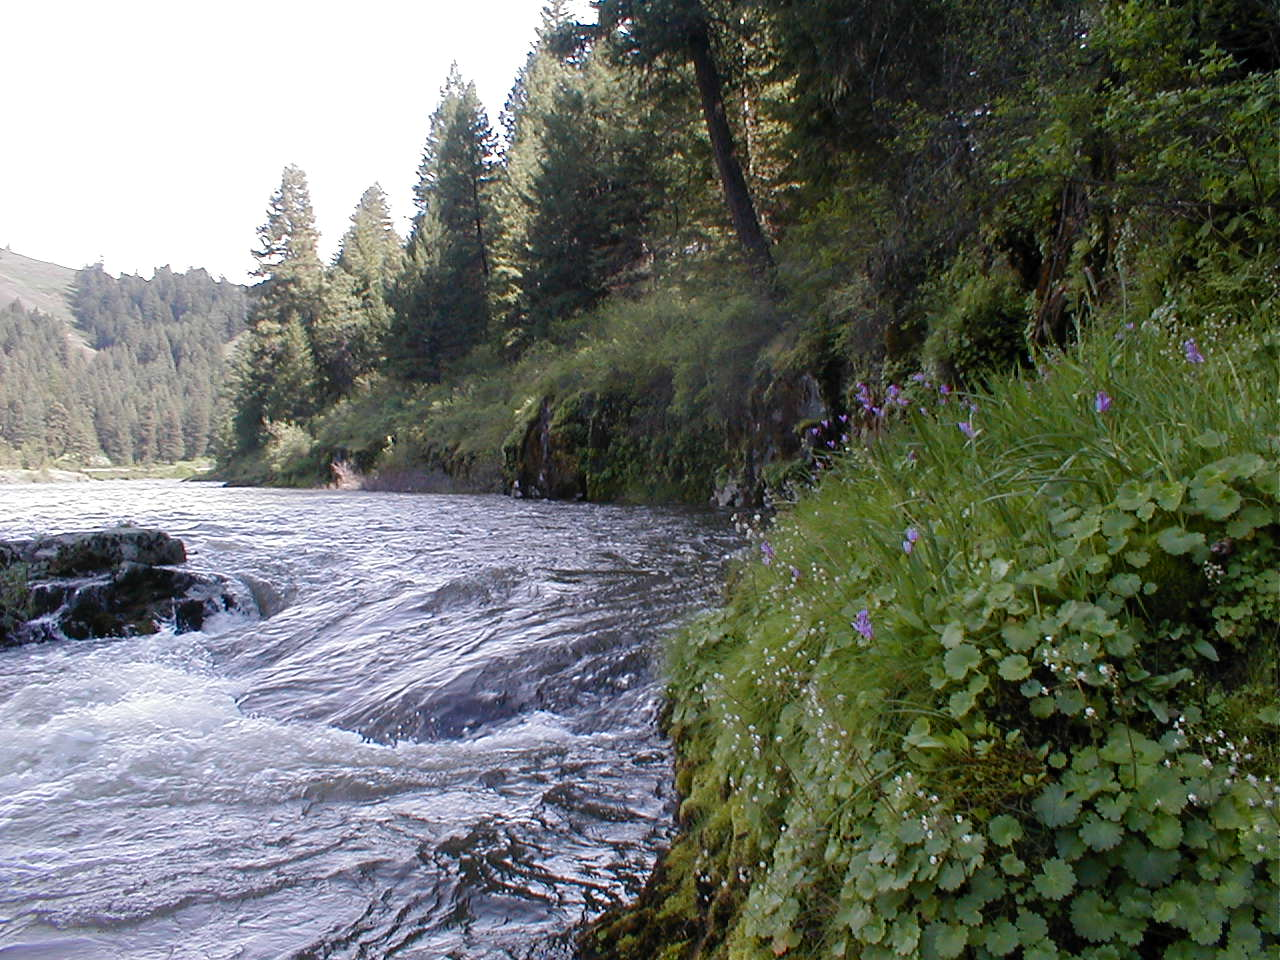 Wallowa and Grande Ronde Wild and Scenic Rivers